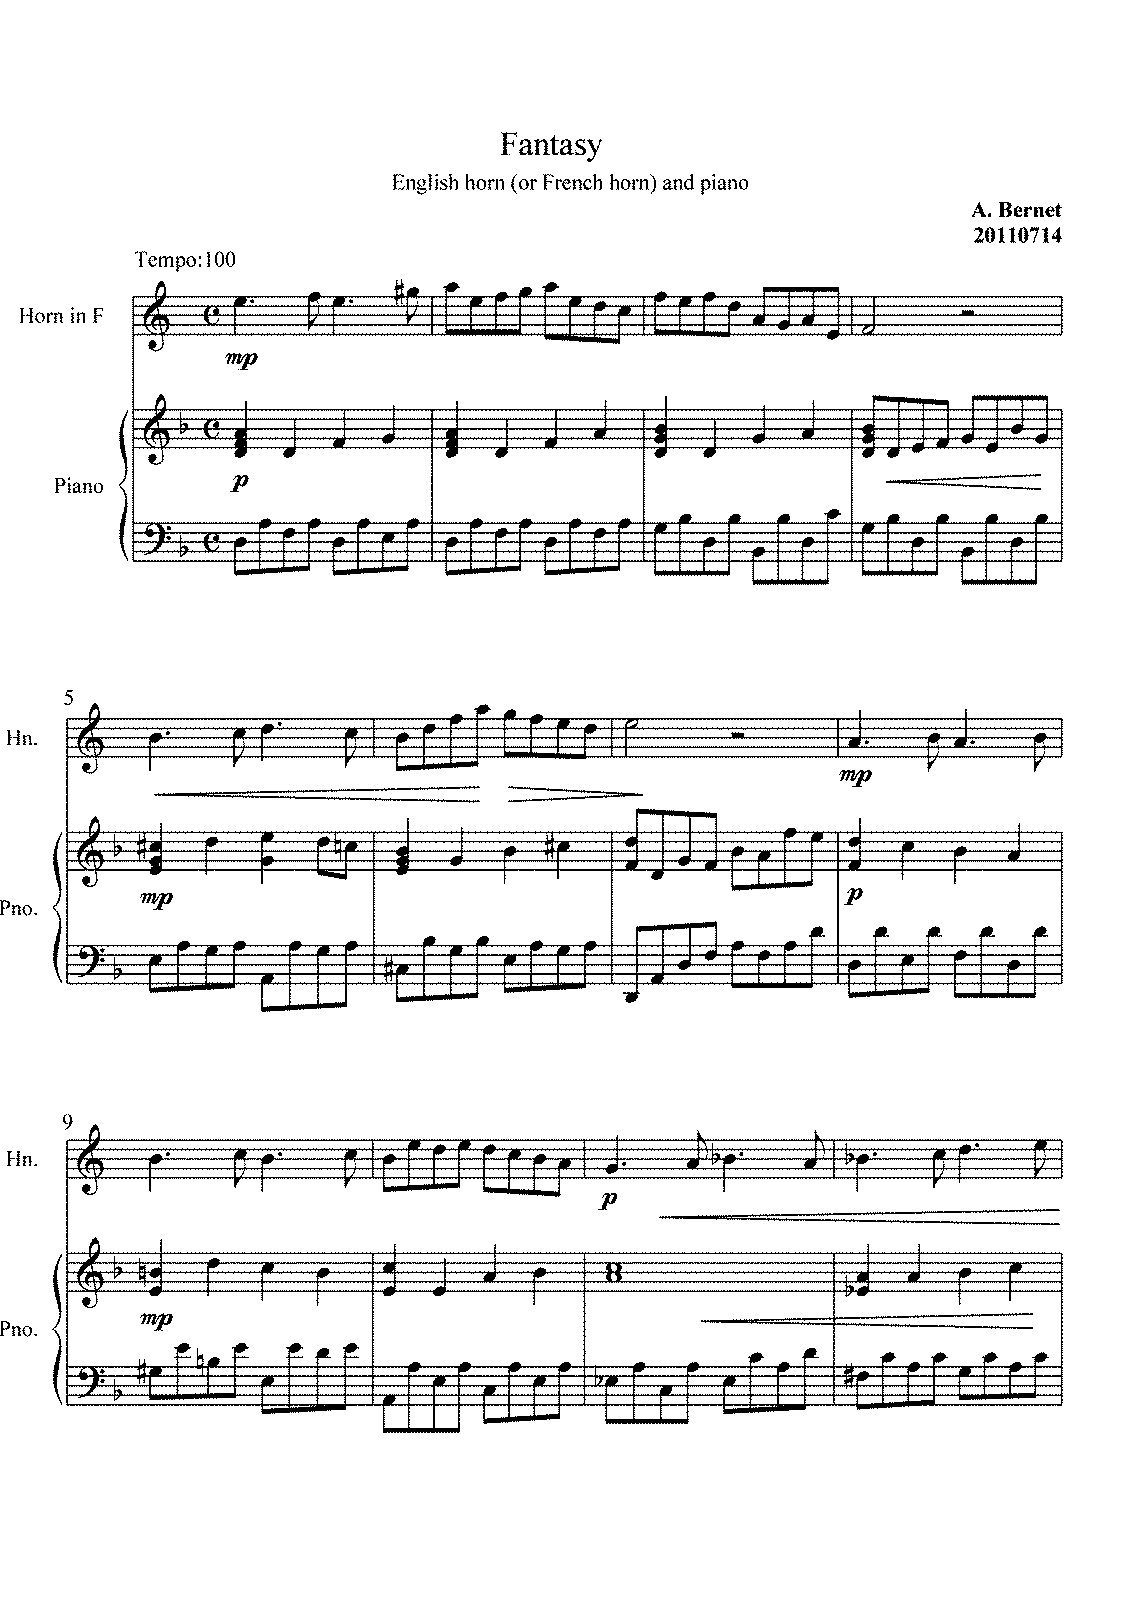 PMLP228455-Finale NotePad 2008 - -FANTASY ENGLISH HORN PIANO.pdf